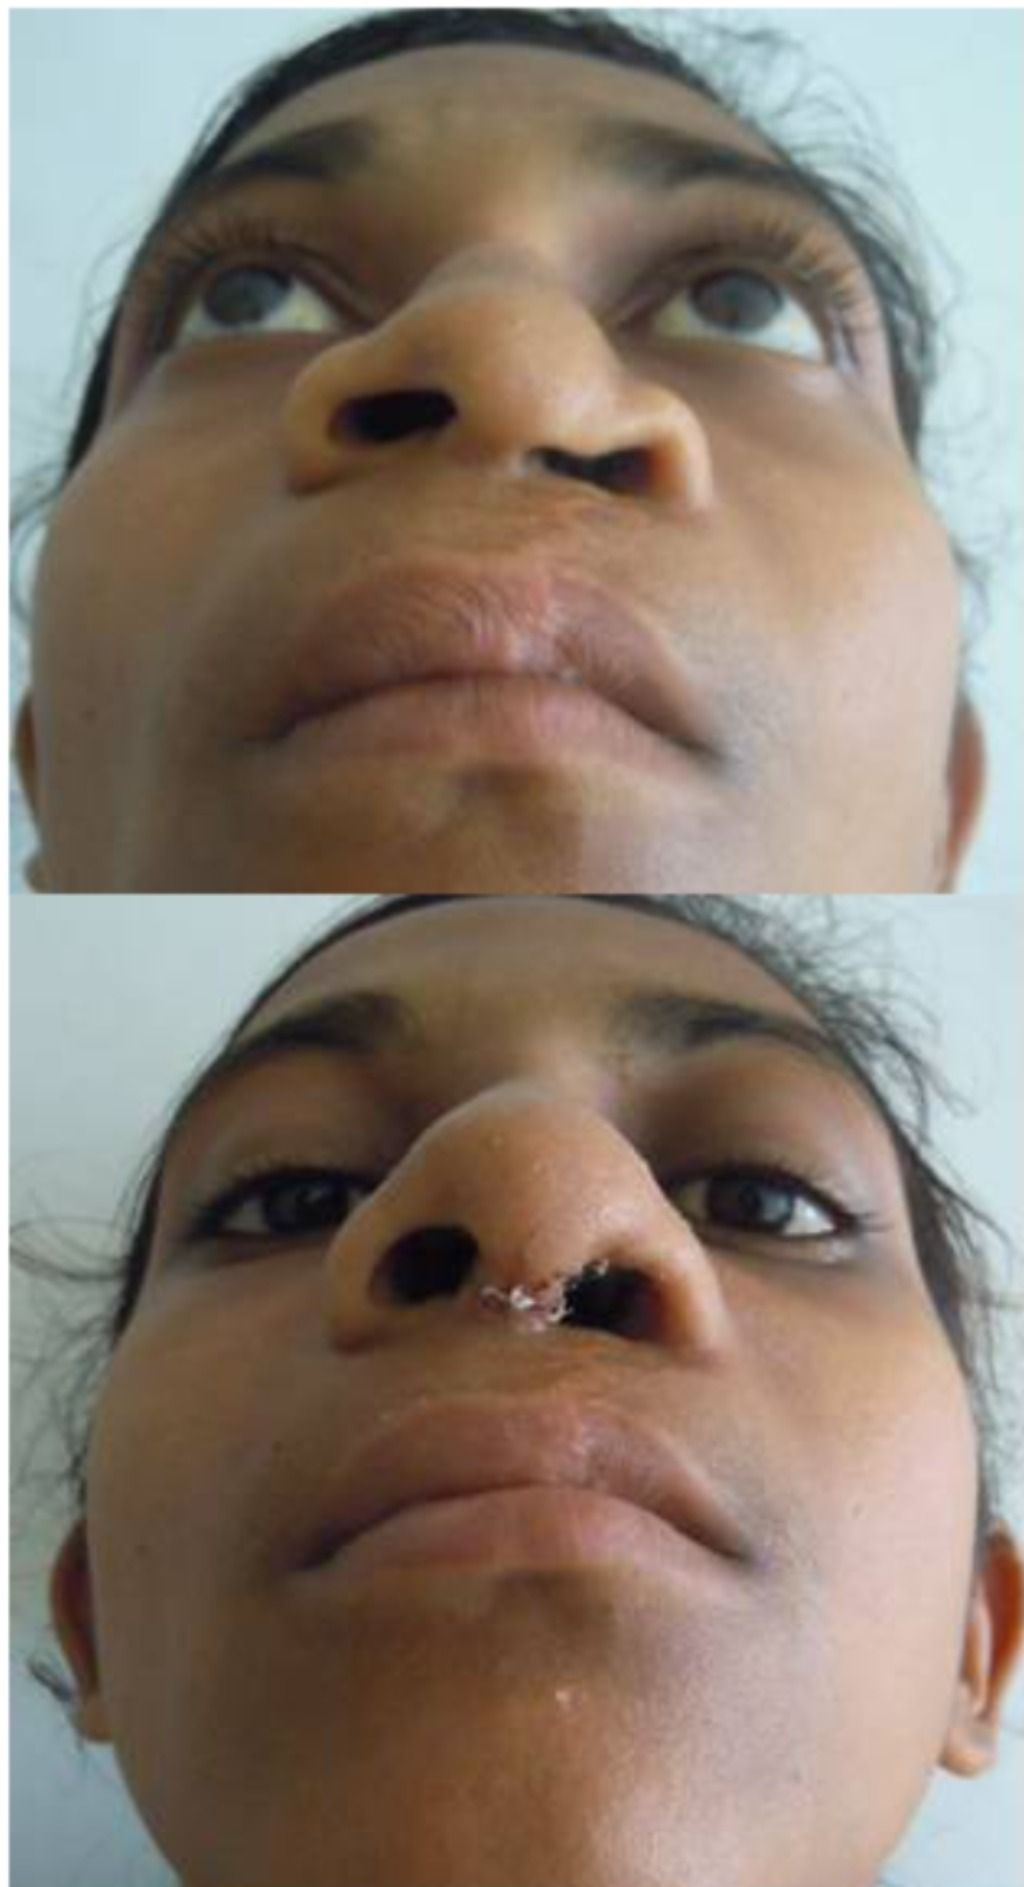 Pre And Post Op Rhinoplasty Surgery In 2020 Nose Plastic Surgery Rhinoplasty Surgery Rhinoplasty